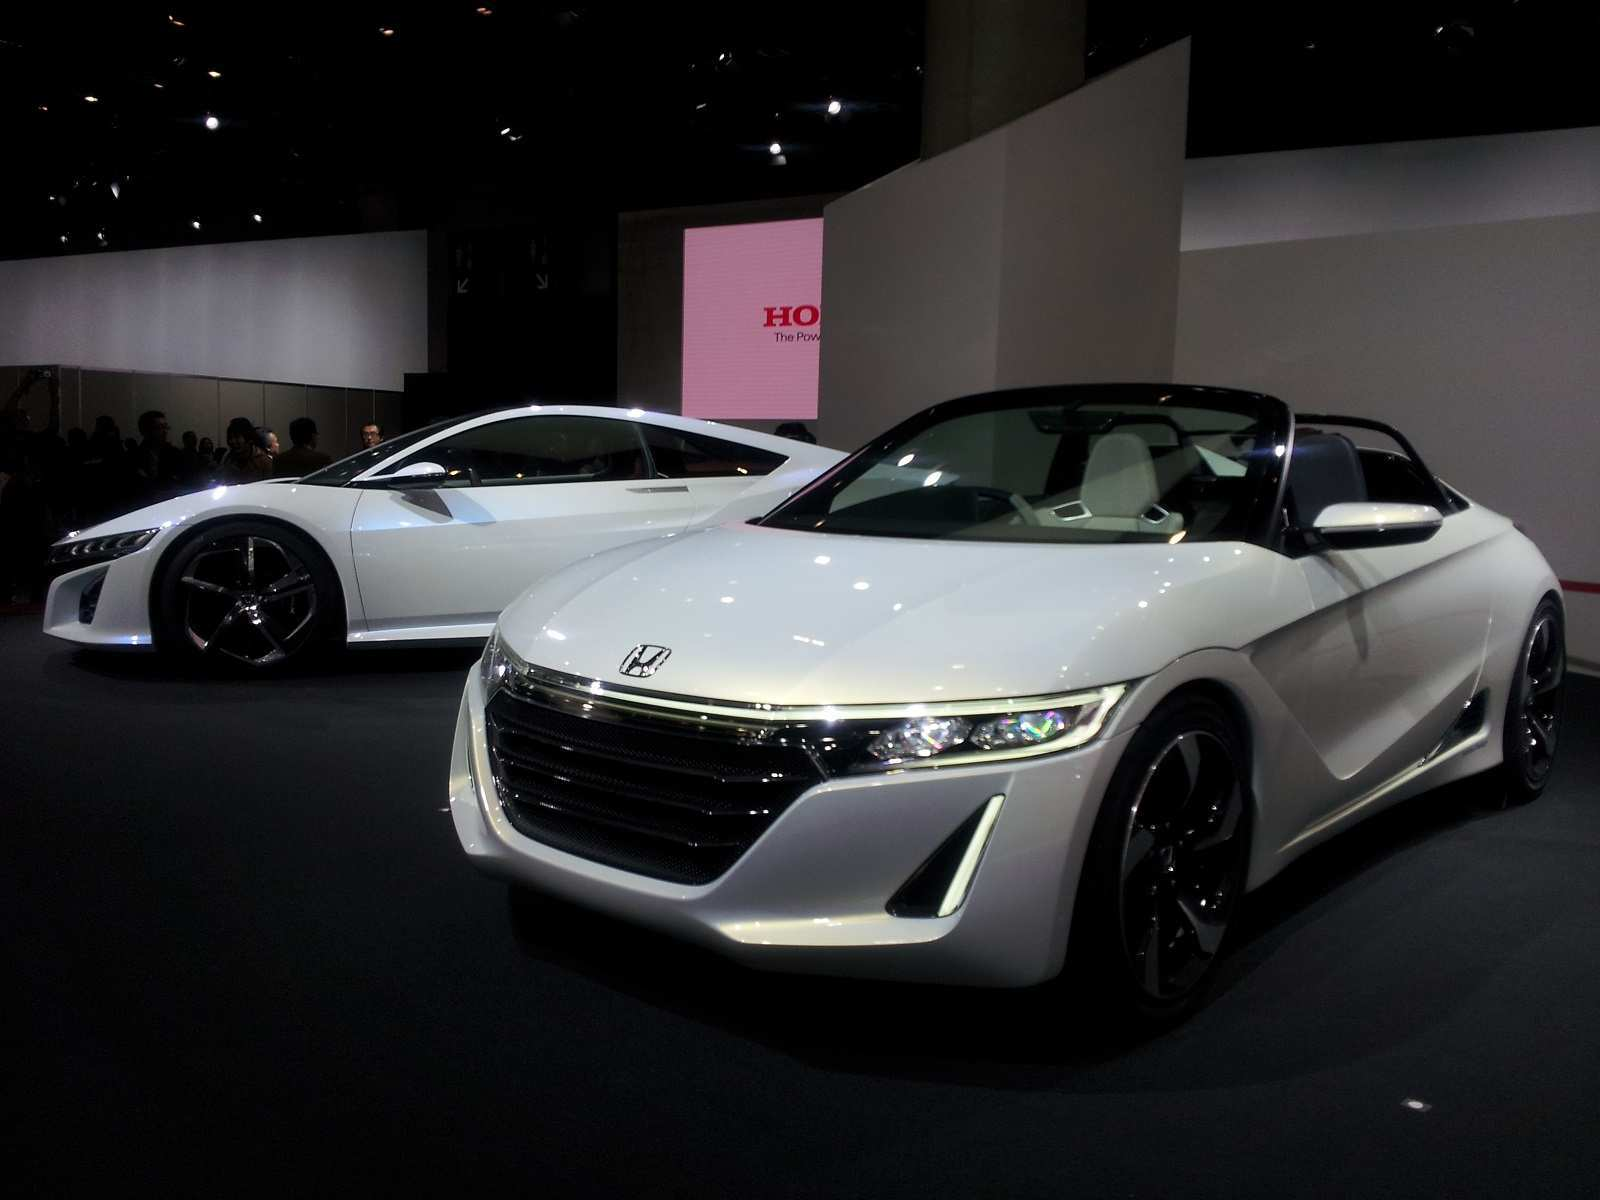 59 All New 2020 Honda S660 Picture